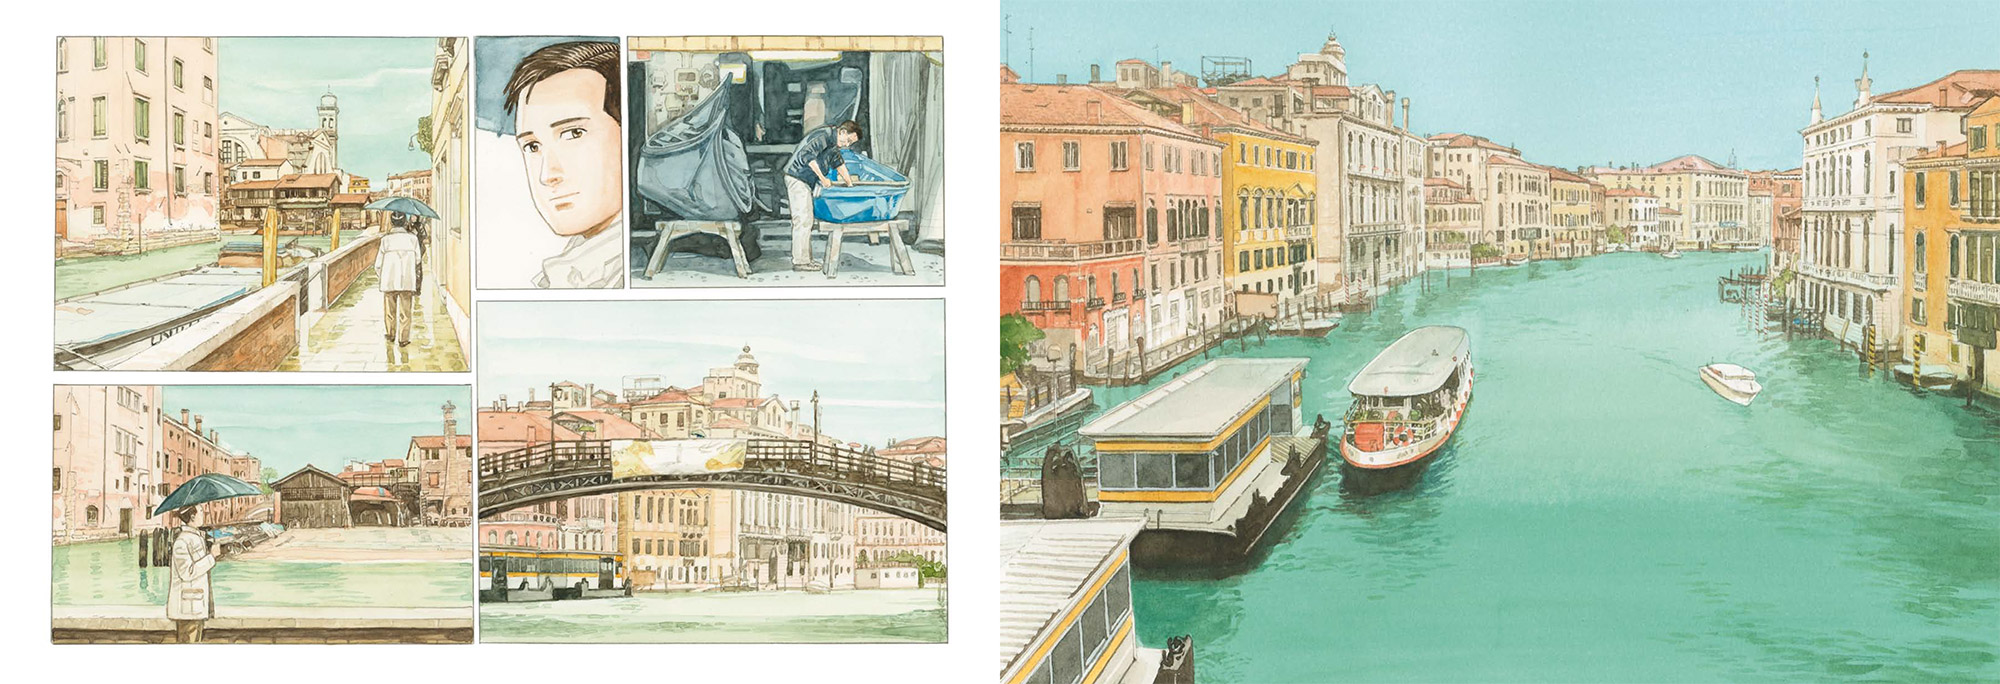 LV_TravelBook_Venice_01